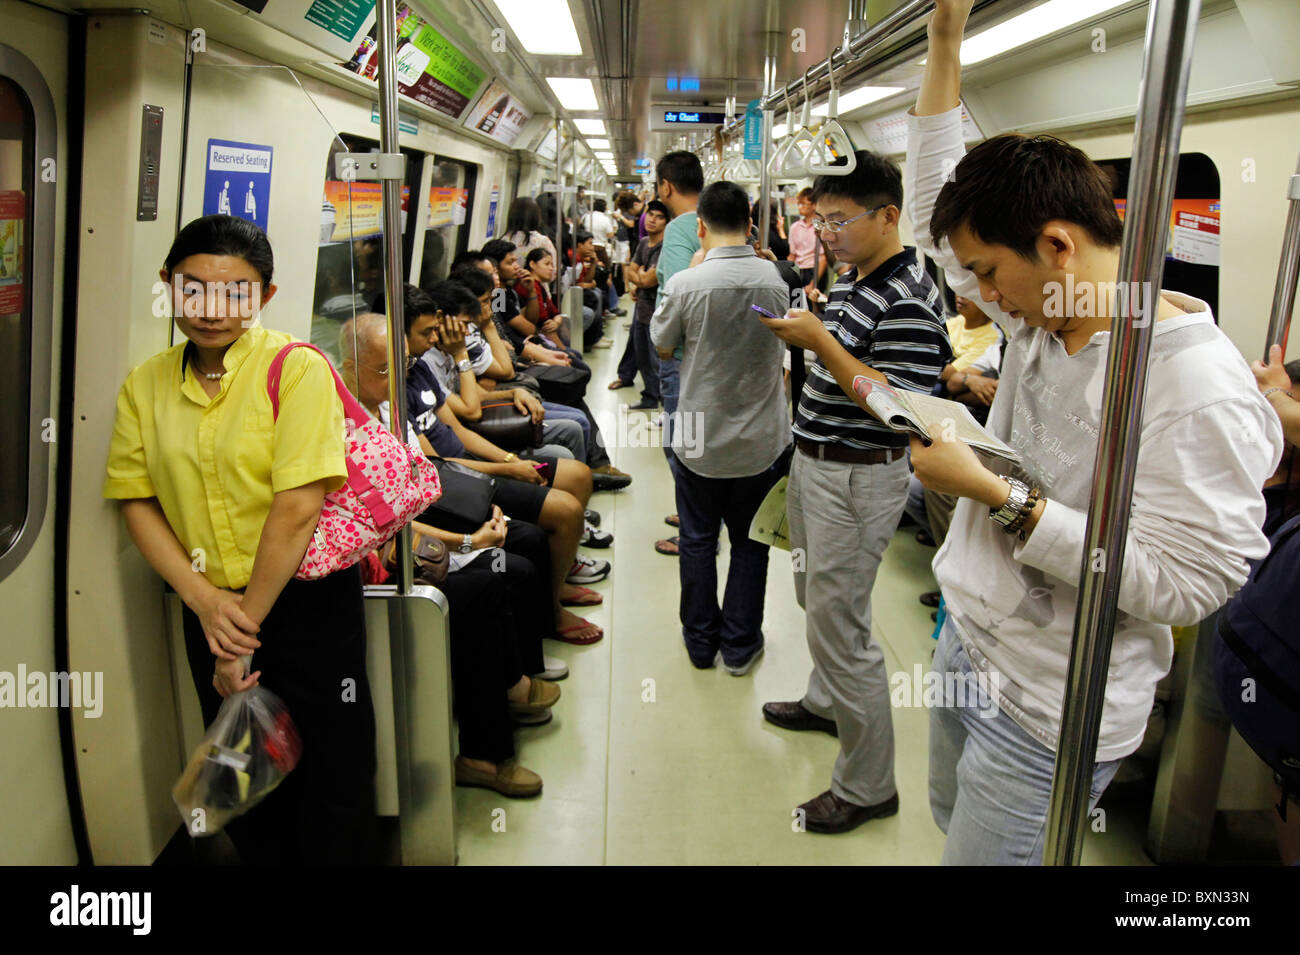 Singapore: Passengers in a car of MRT (Mass Rapid Transport) subway train system - Stock Image